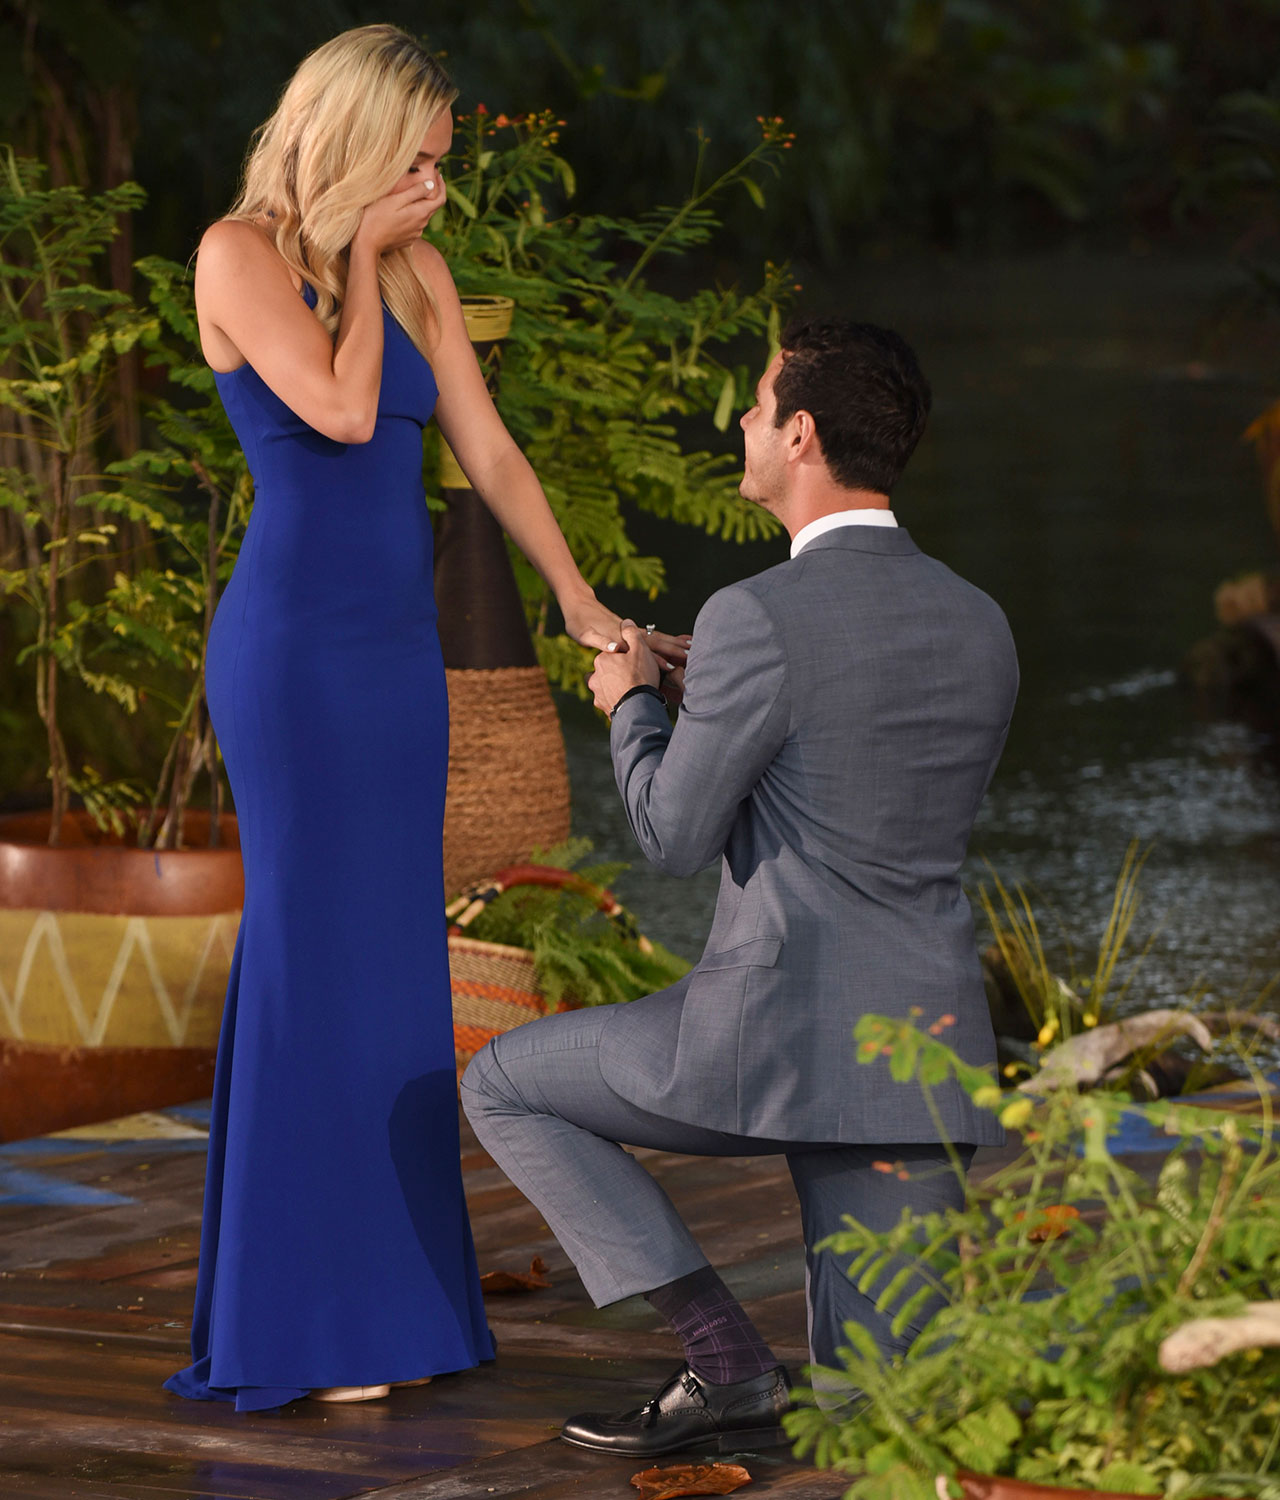 Have The Celebrity Worthy Proposal Of Her Dreams